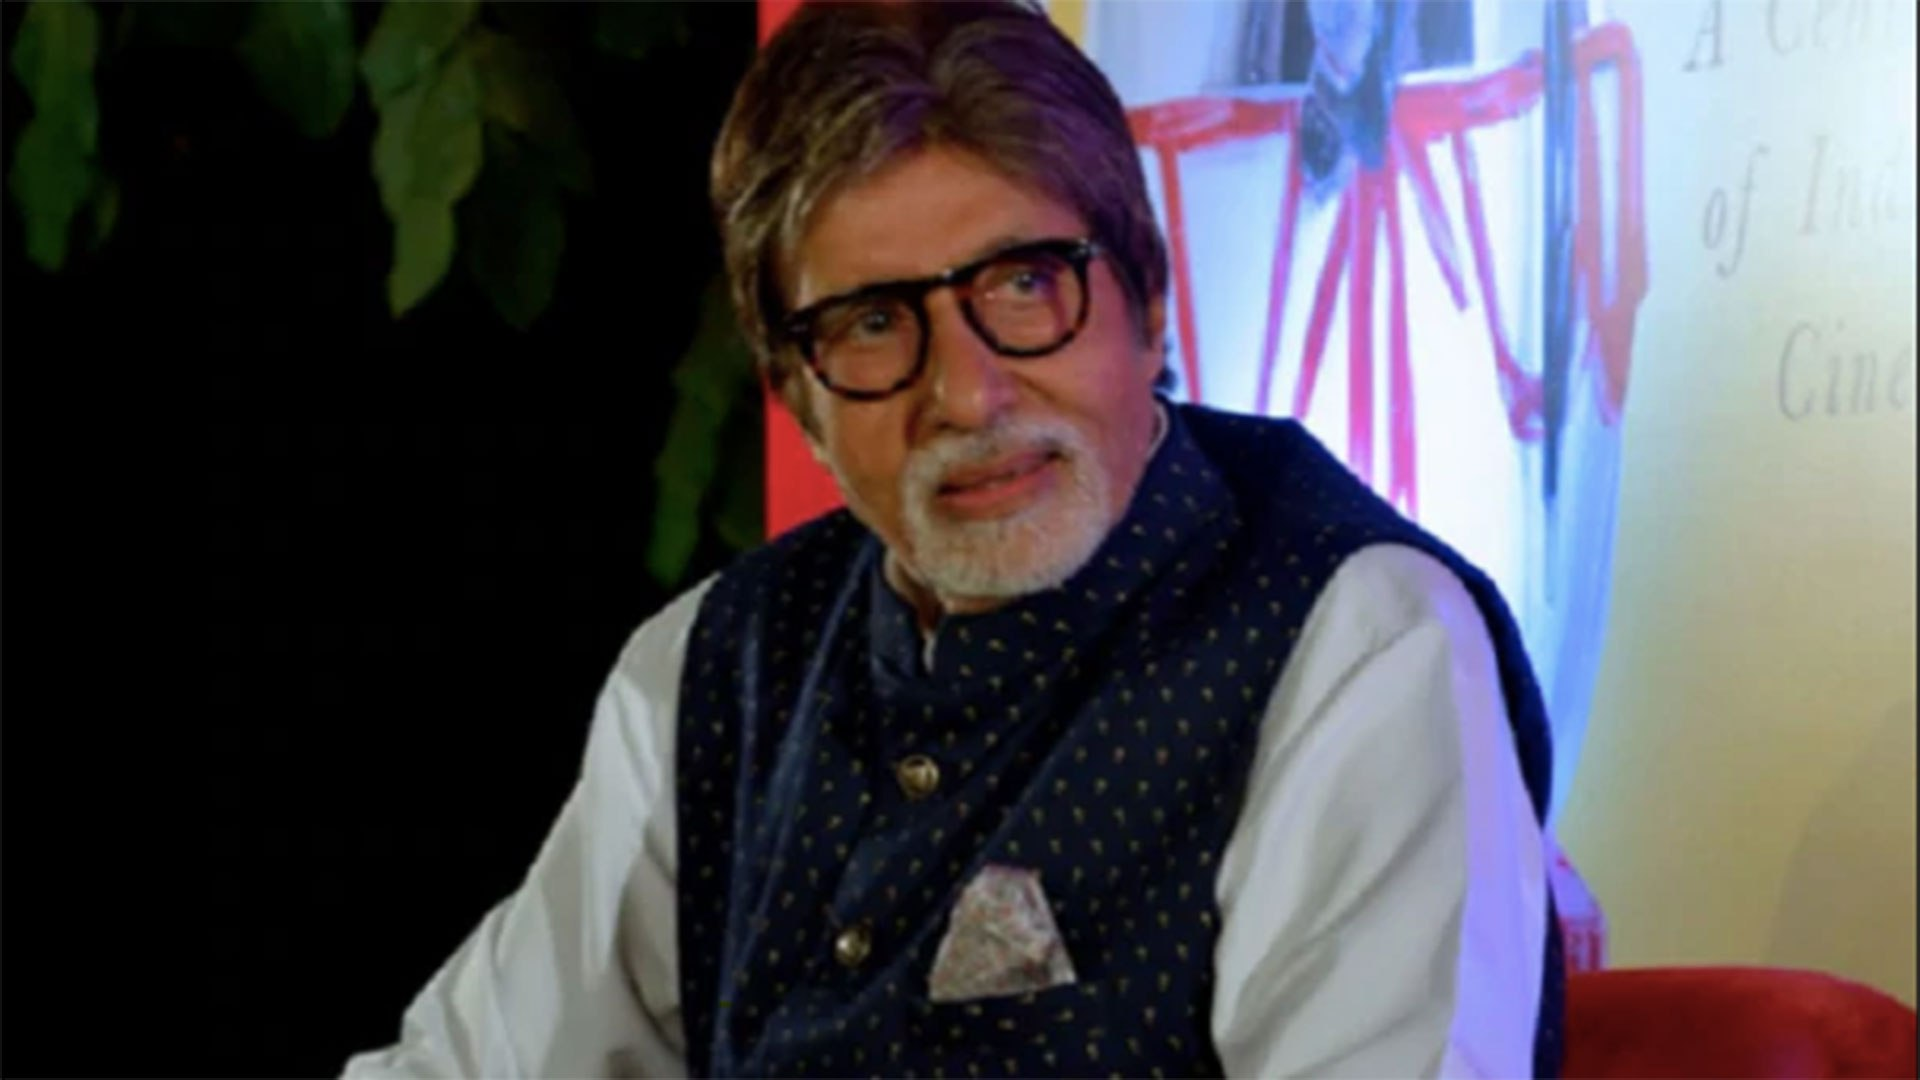 Amitabh Bachchan tweets message for fans